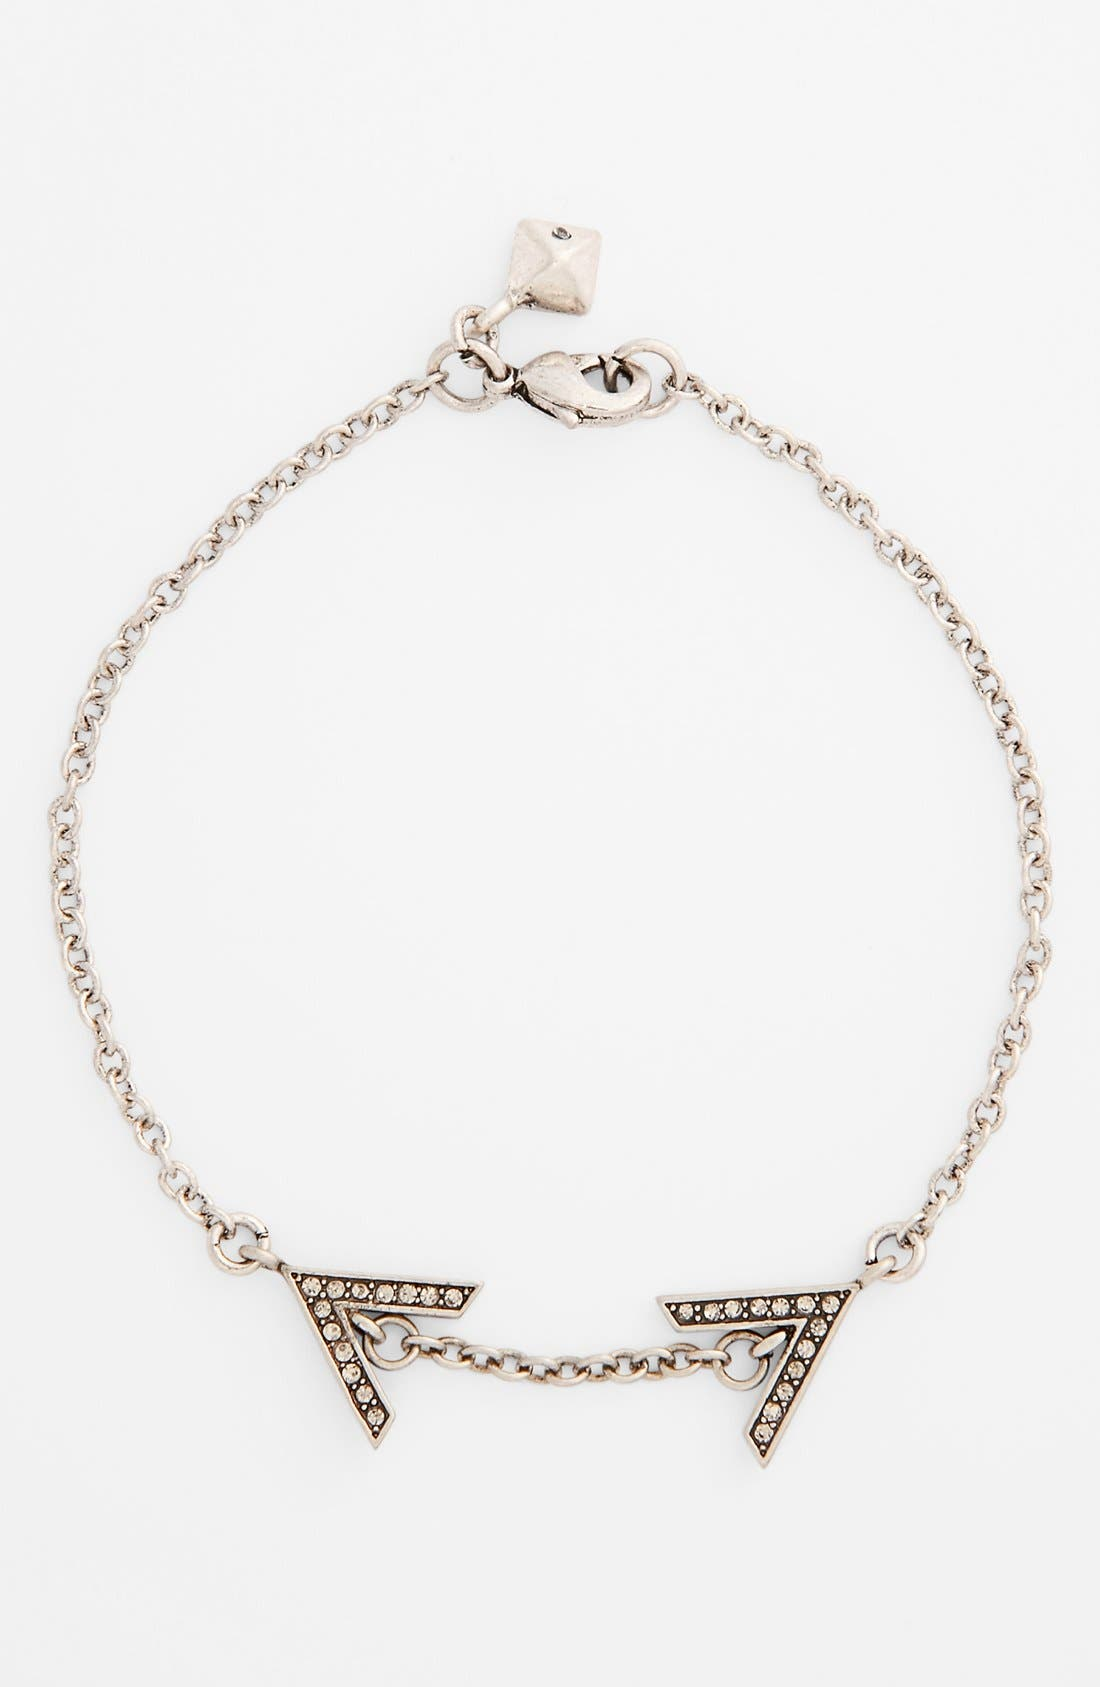 Alternate Image 1 Selected - Rebecca Minkoff 'Jewel Box' Double V Line Bracelet